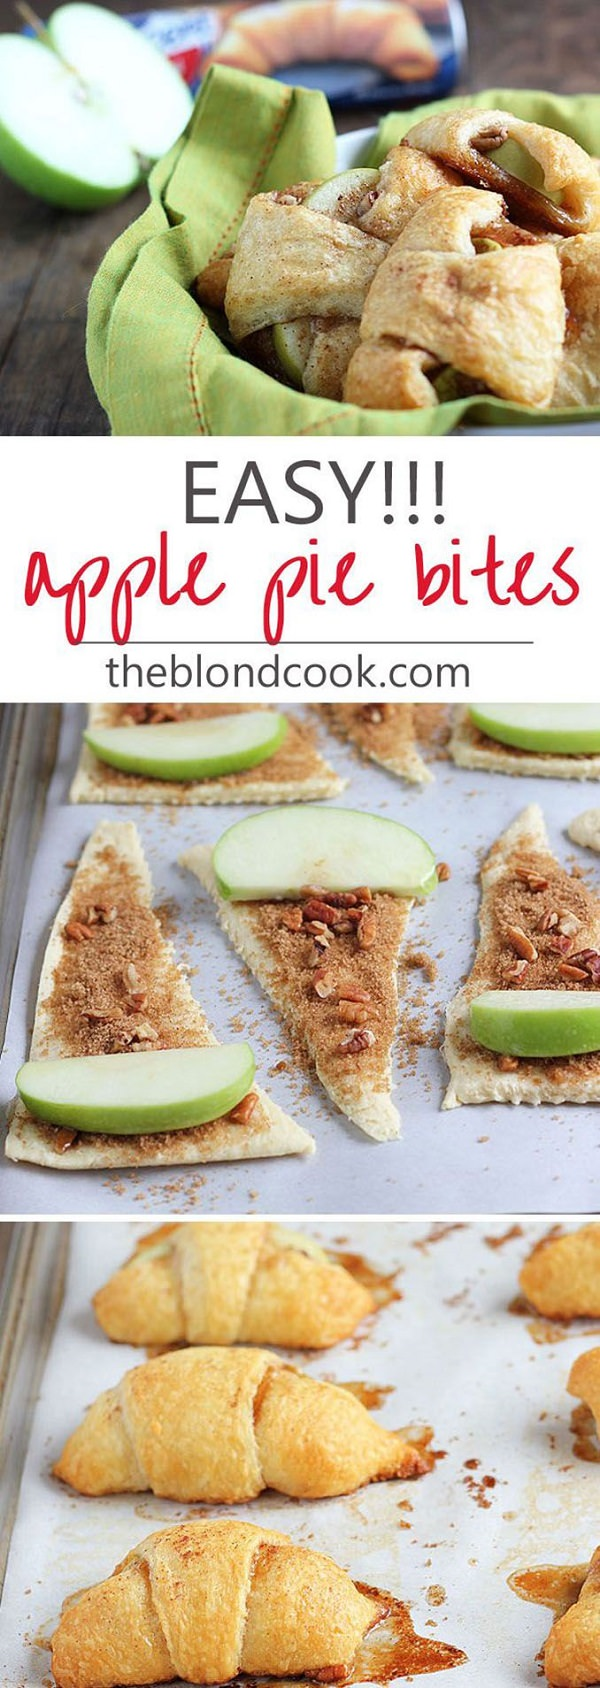 These incredibly delicious (and easy) Apple Pie Bites are going to be your go-to dessert in a hurry!